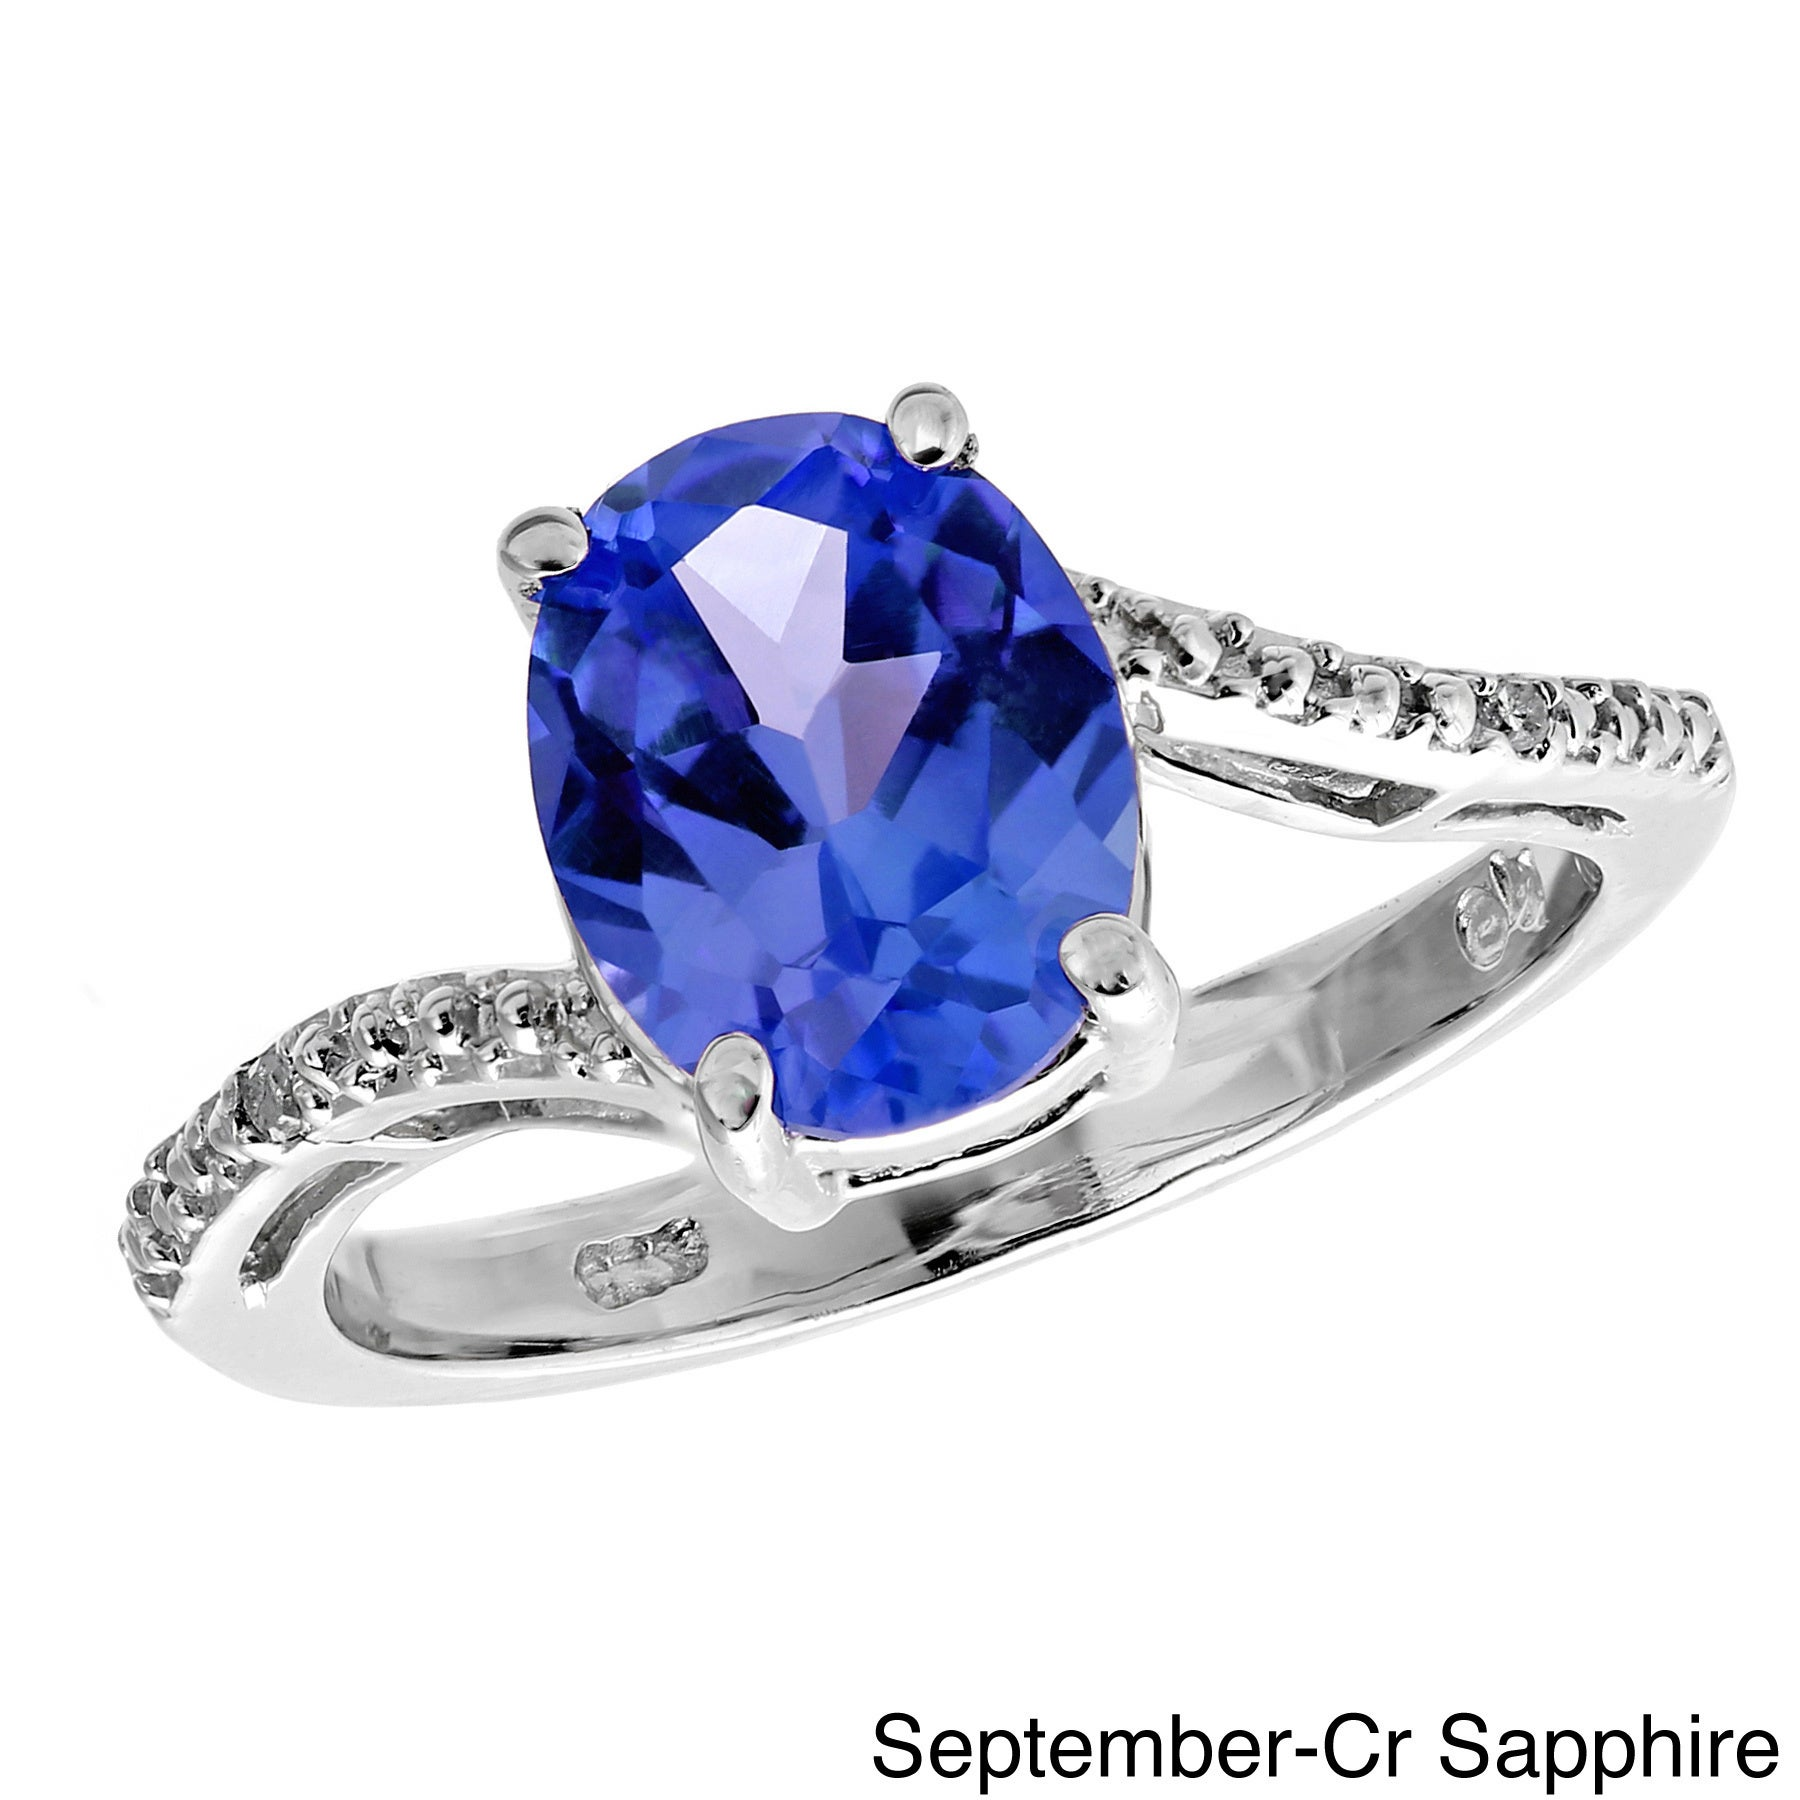 come septembers they blue hubert s sapphires orange besides includes jewelry ruby and yellow birthstone green called corundum purple the so sapphire september in fancy family pink violet also